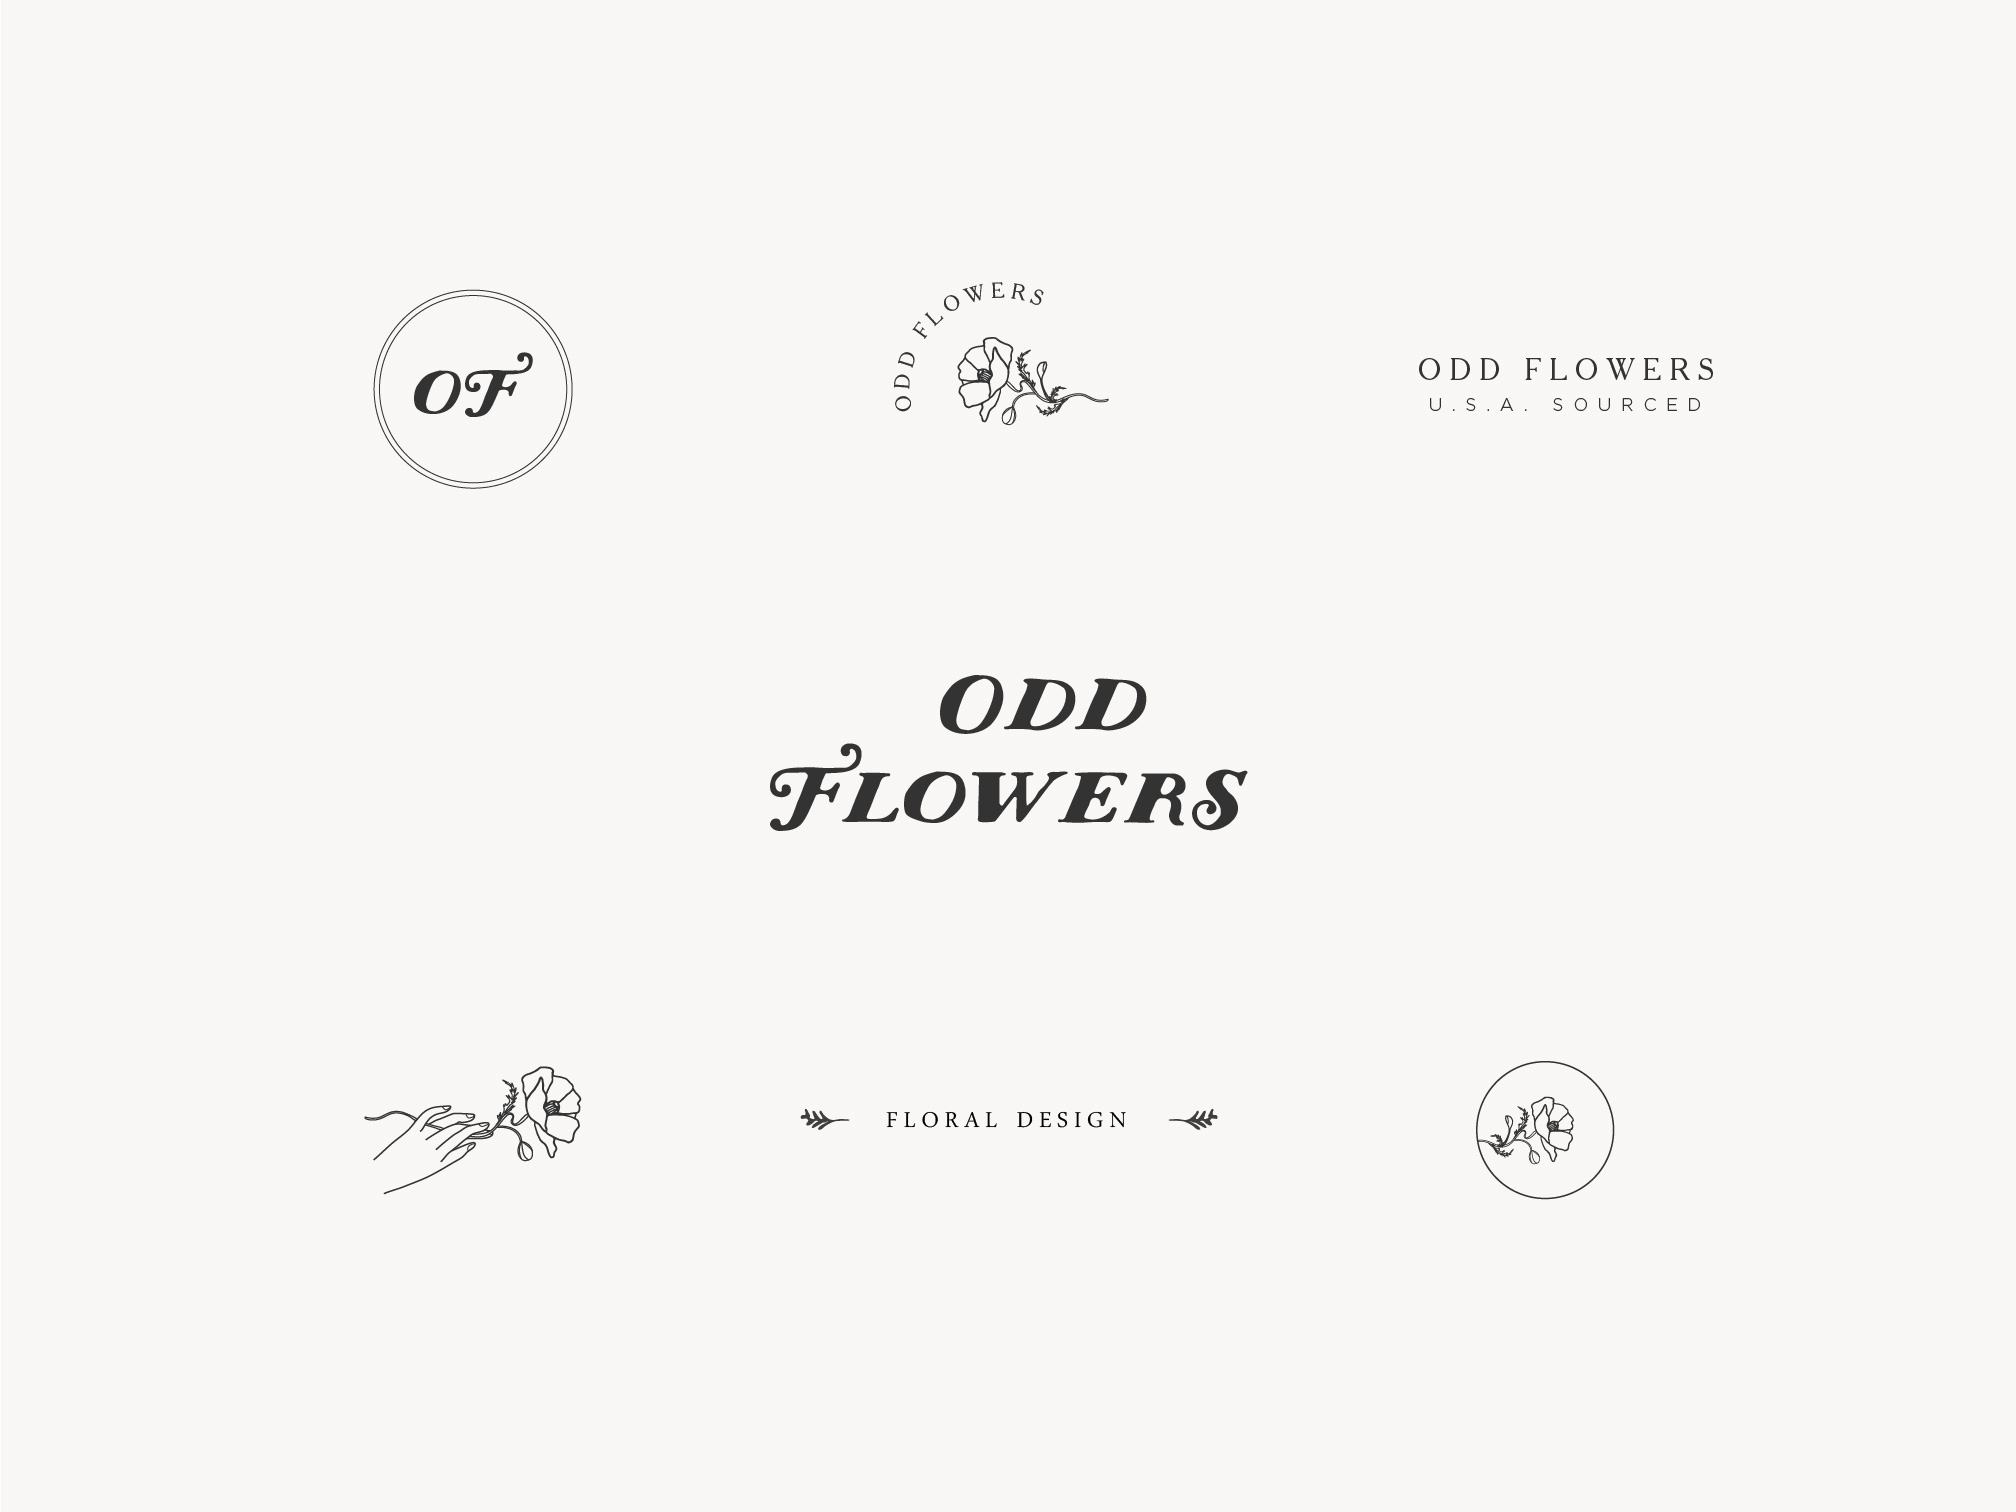 odd flowers logo design brand suite